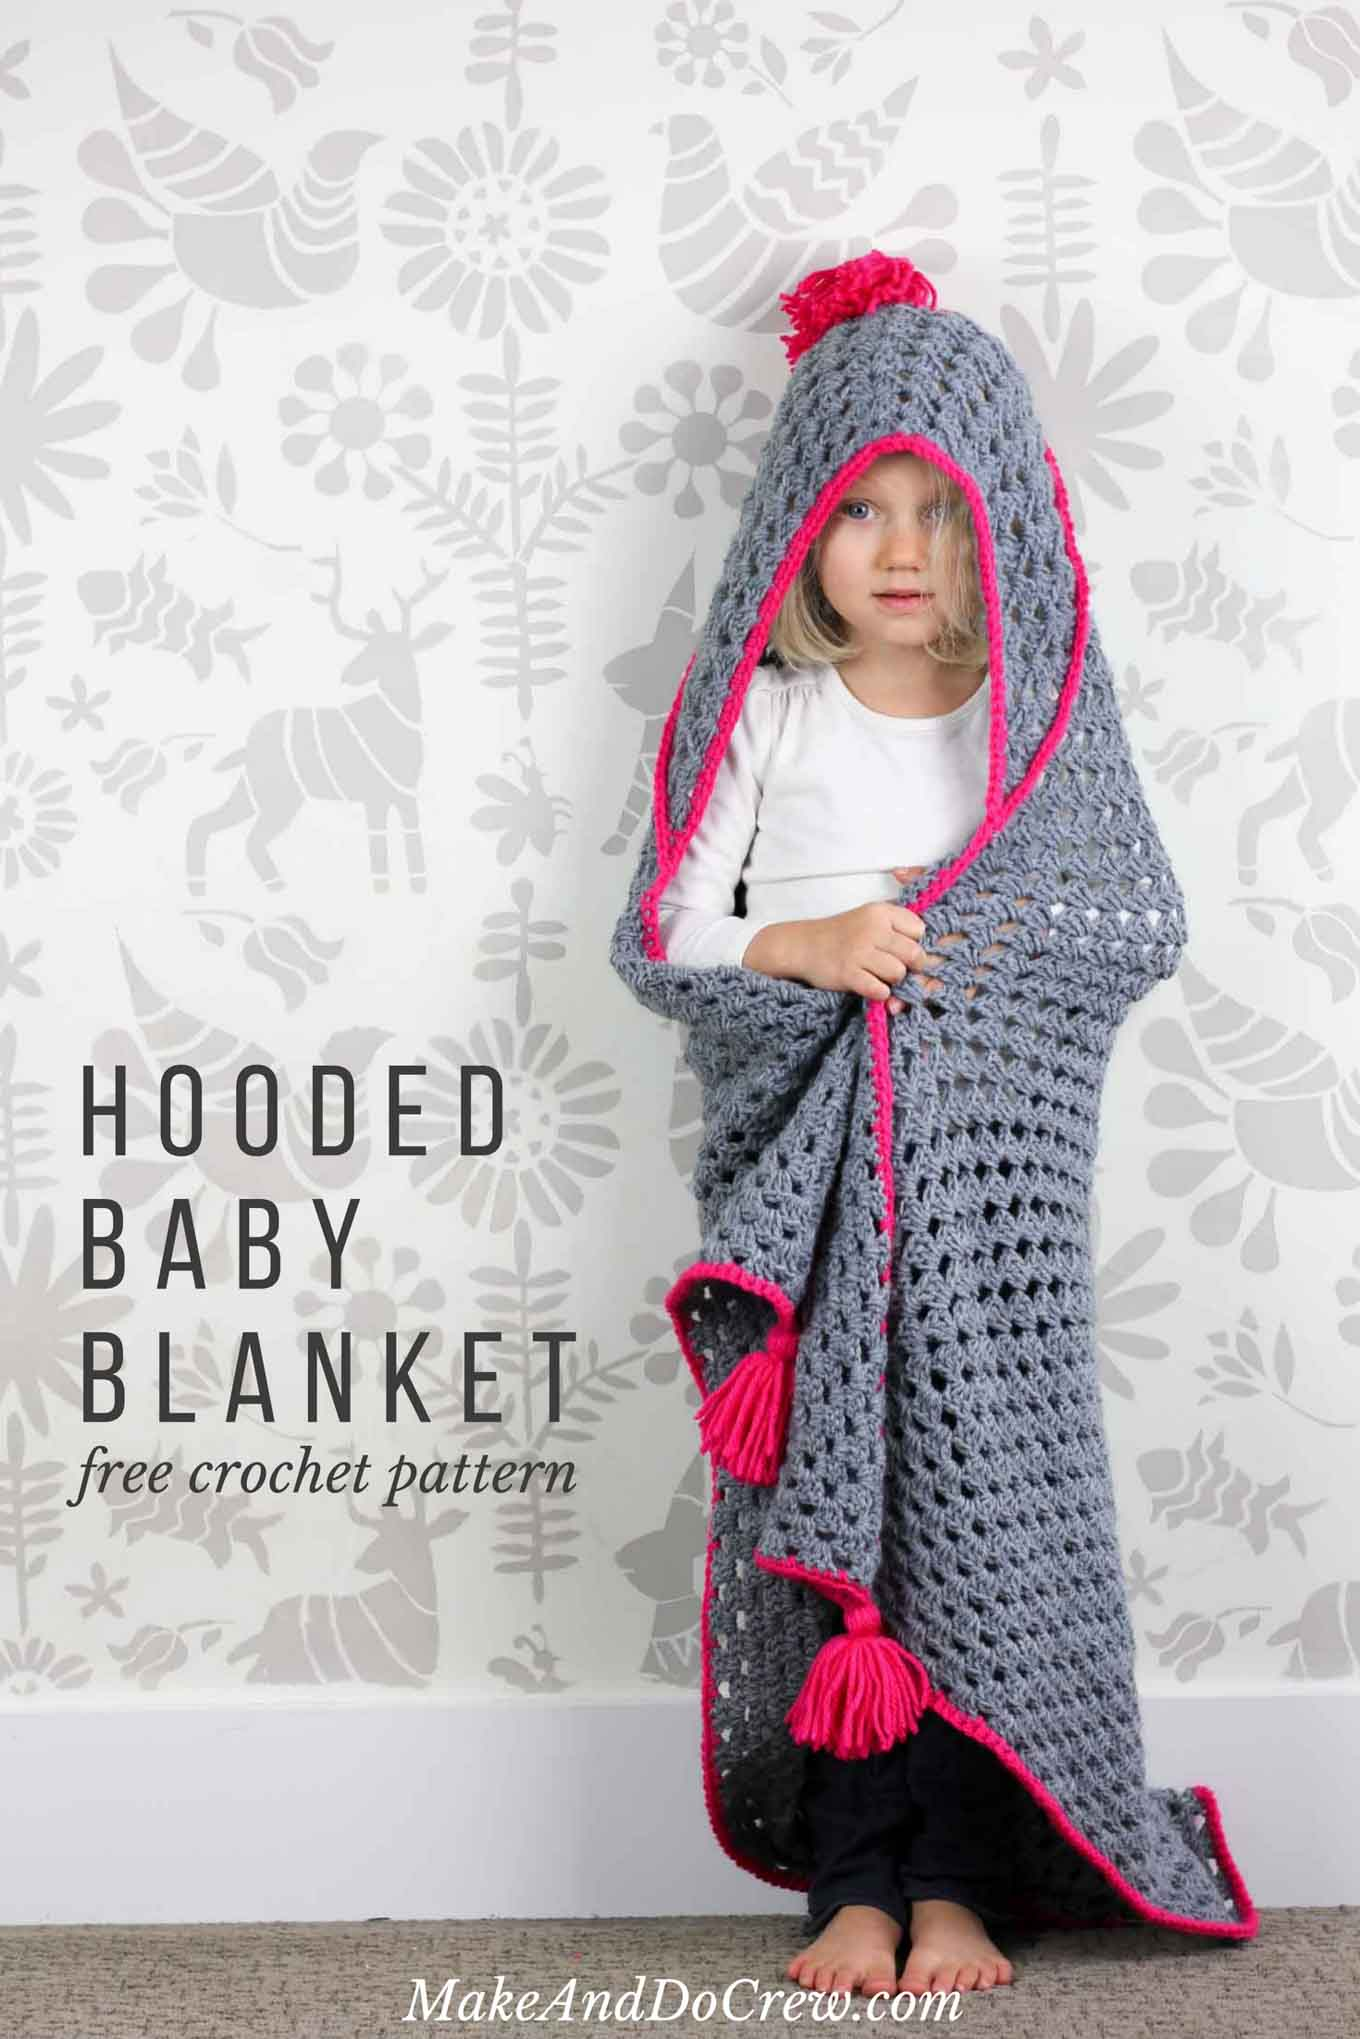 Modern Crochet Hooded Baby Blanket - free pattern for charity